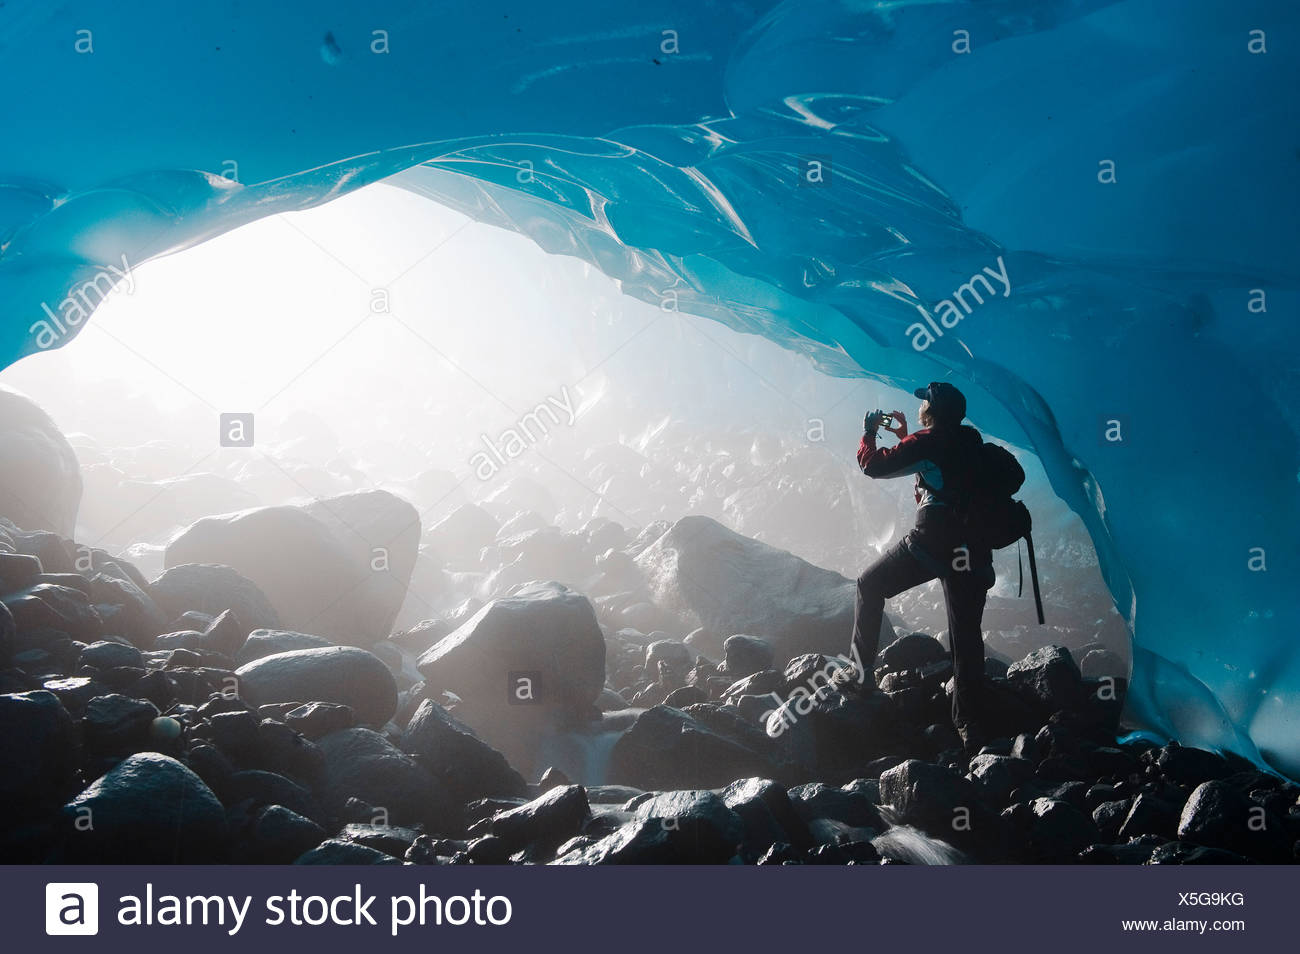 A hiker takes a photograph of the entrance of an ice cave from the inside of the Mendenhall Glacier, Southeast Alaska, Summer - Stock Image